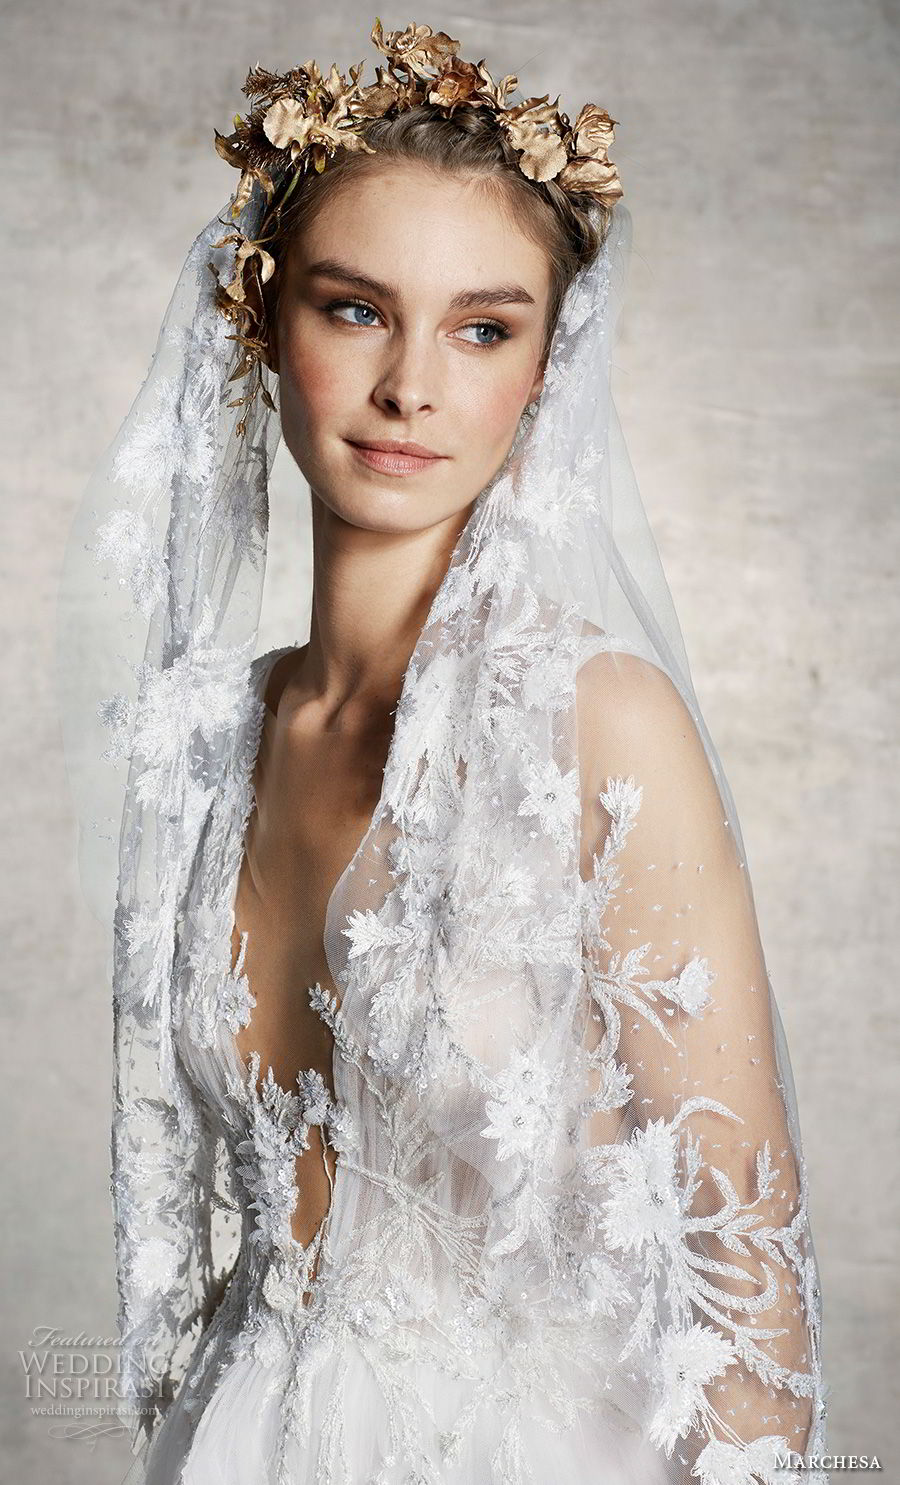 Marchesa Spring 2019 Wedding Dresses